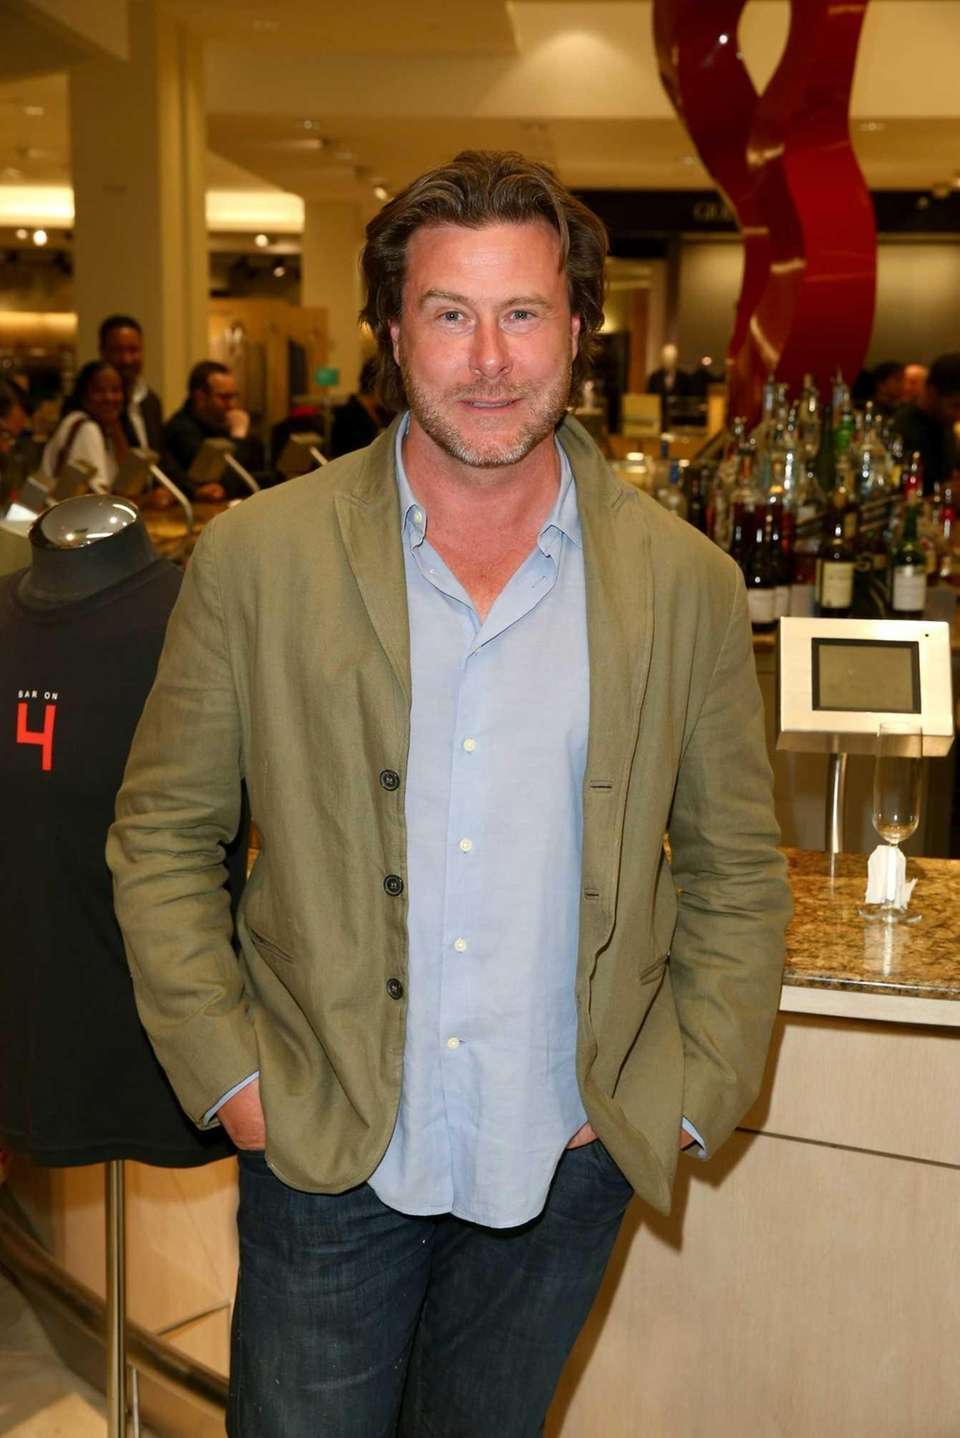 In January 2014, Dean McDermott gave a statement